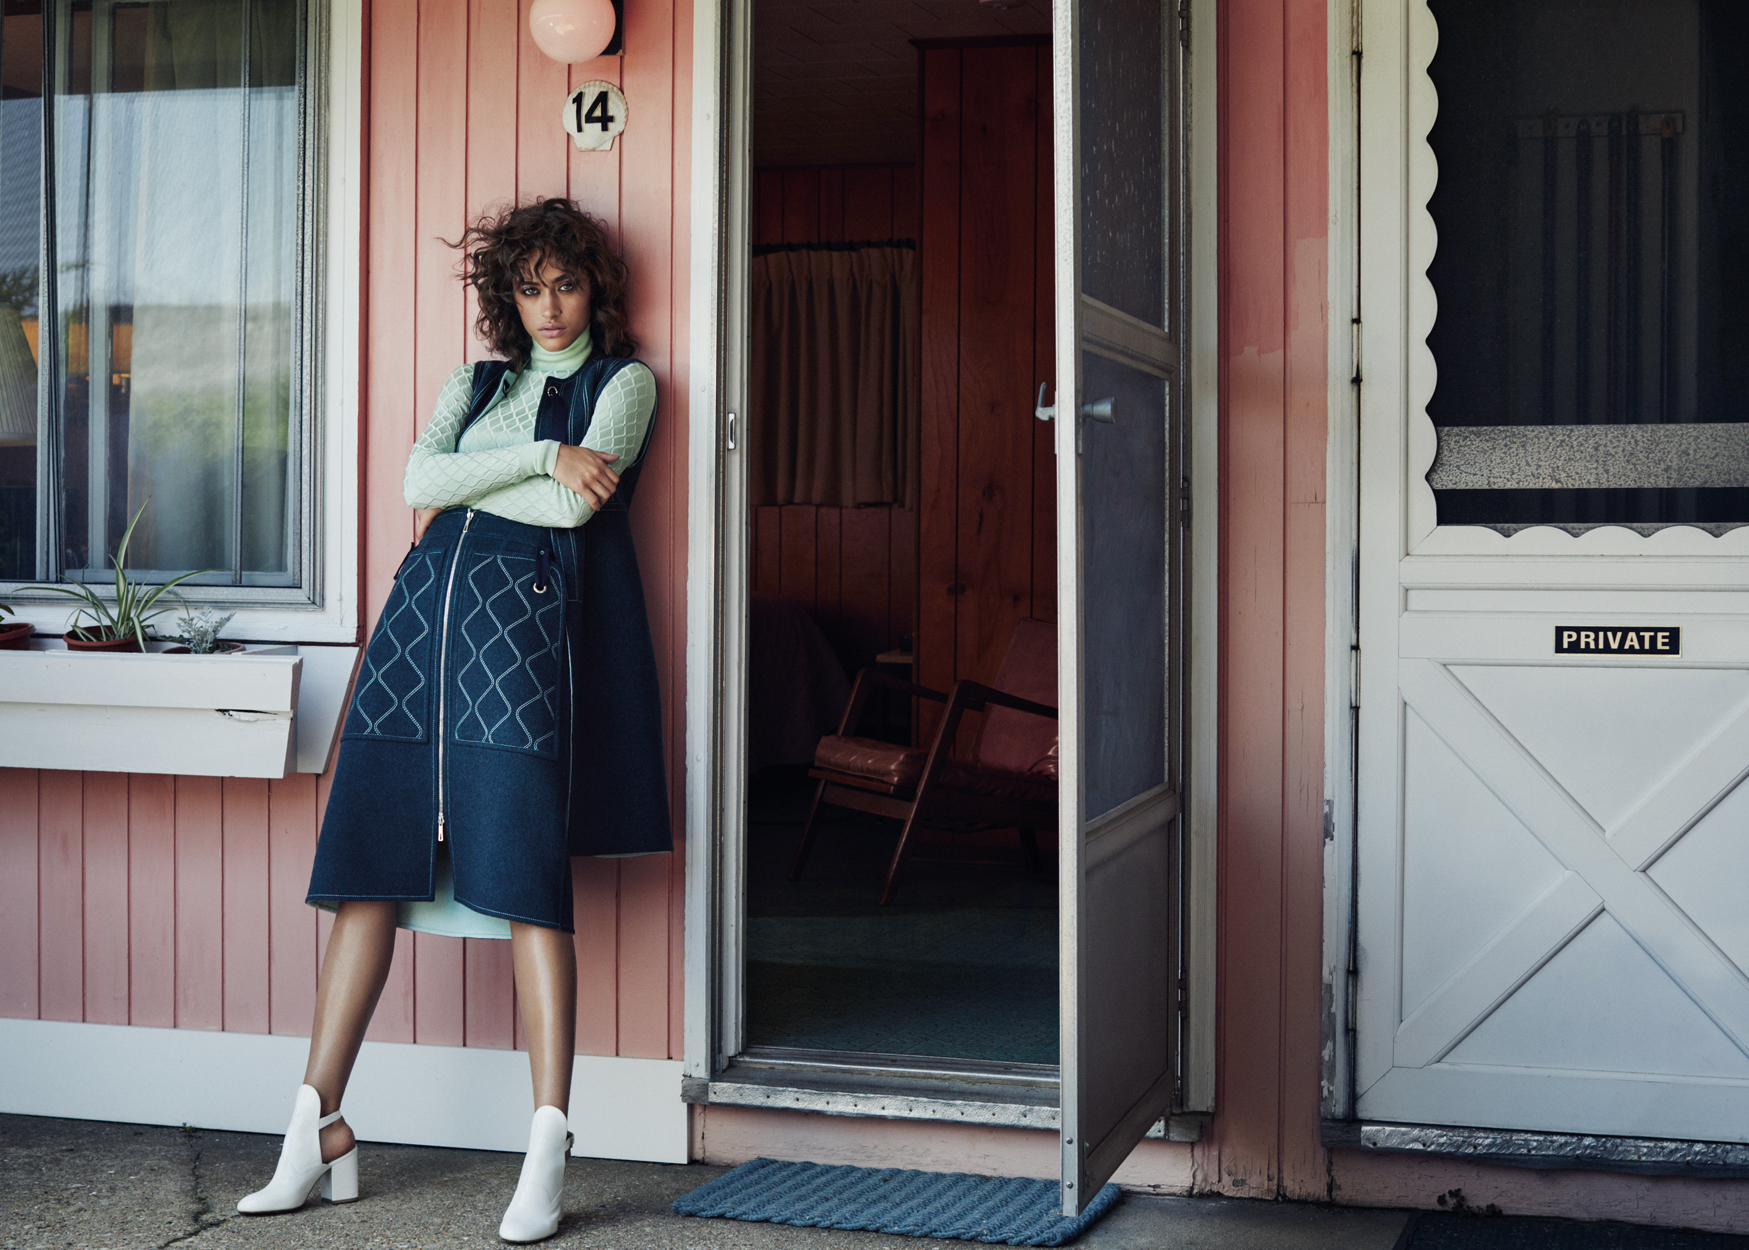 Fashion Photographer Michael Schwartz: model Alanna Arrington for Vogue Arabia Magazine